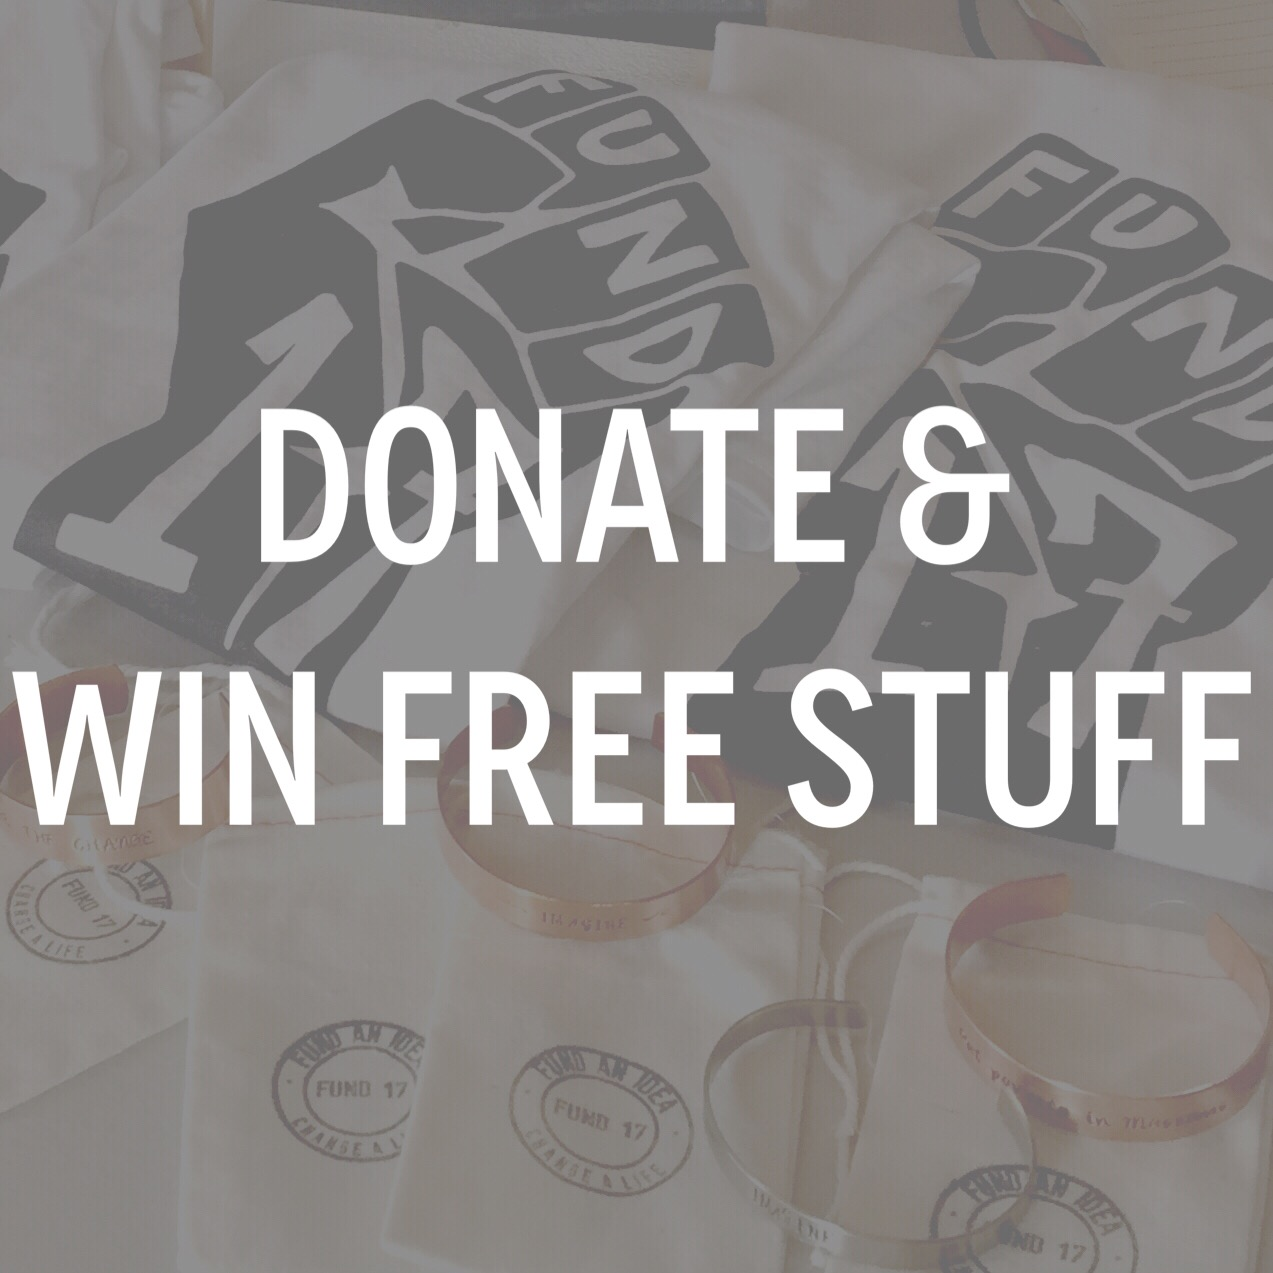 Donate to our campaign and win free stuff!